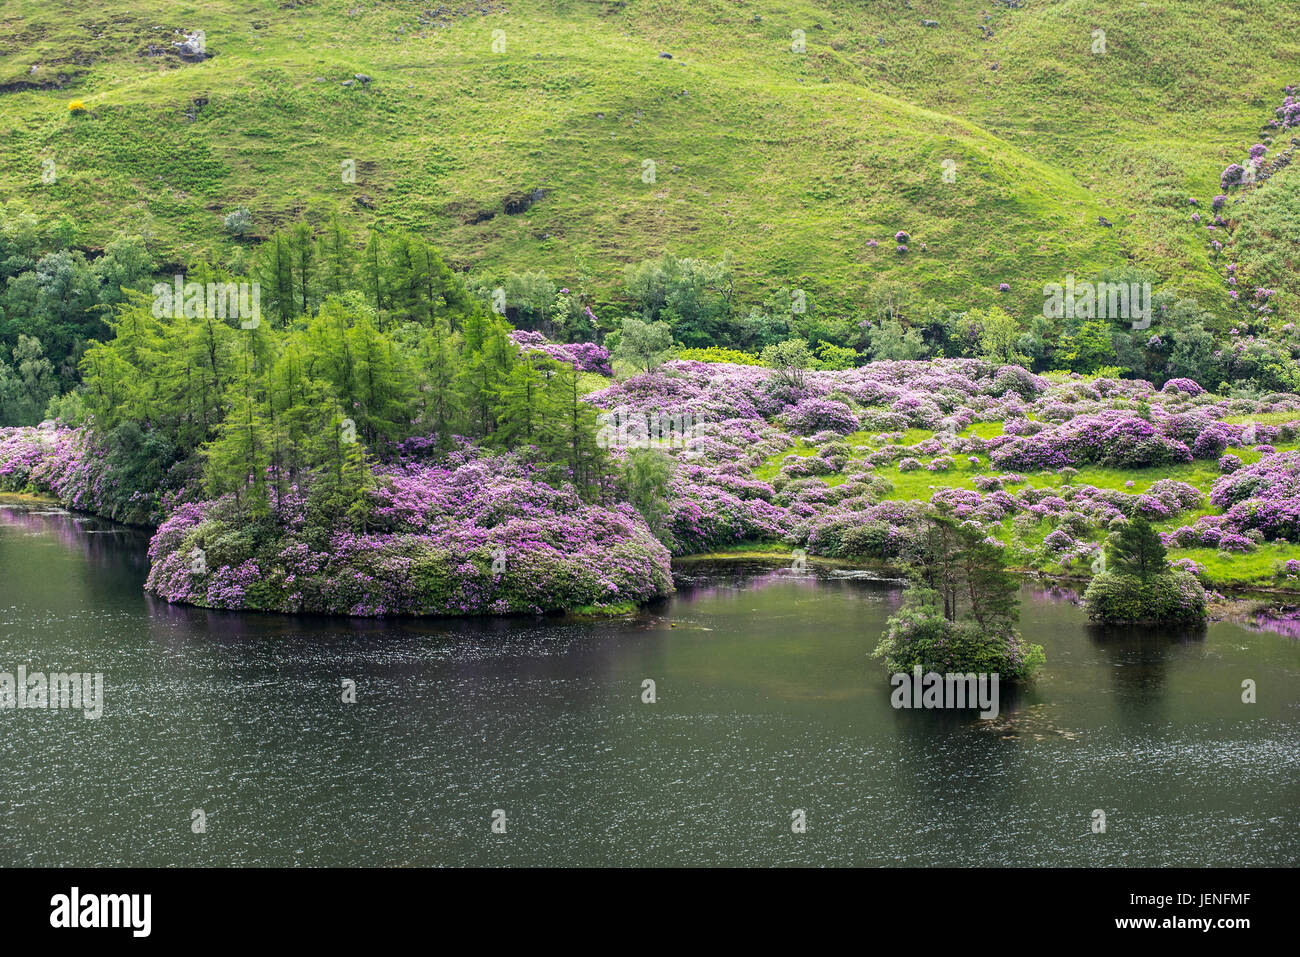 Common rhododendrons / Pontic rhododendron (Rhododendron ponticum) in flower along Loch Etive, invasive species - Stock Image